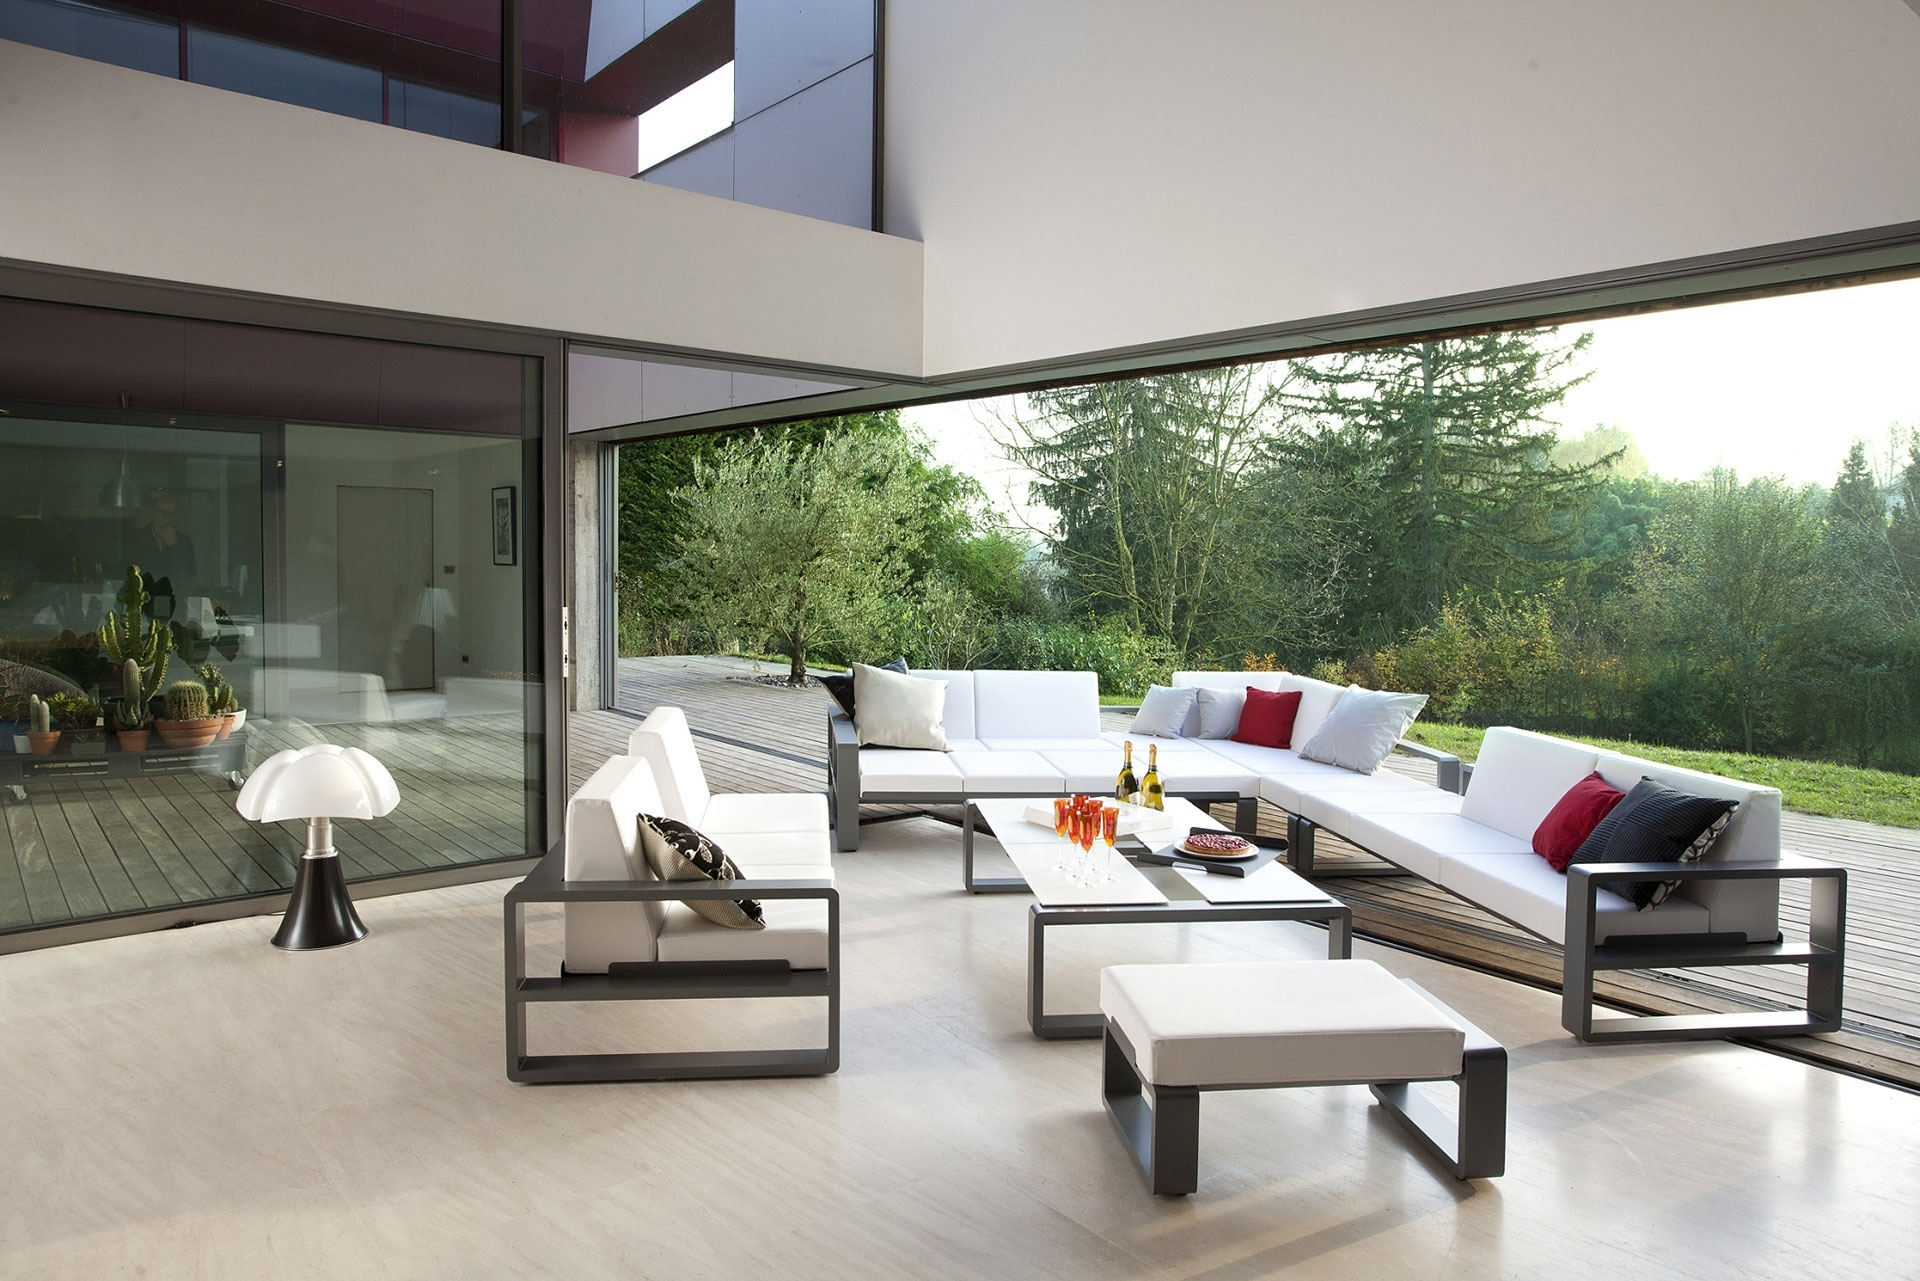 Utilise the outdoor space by fixing contemporary outdoor furniture